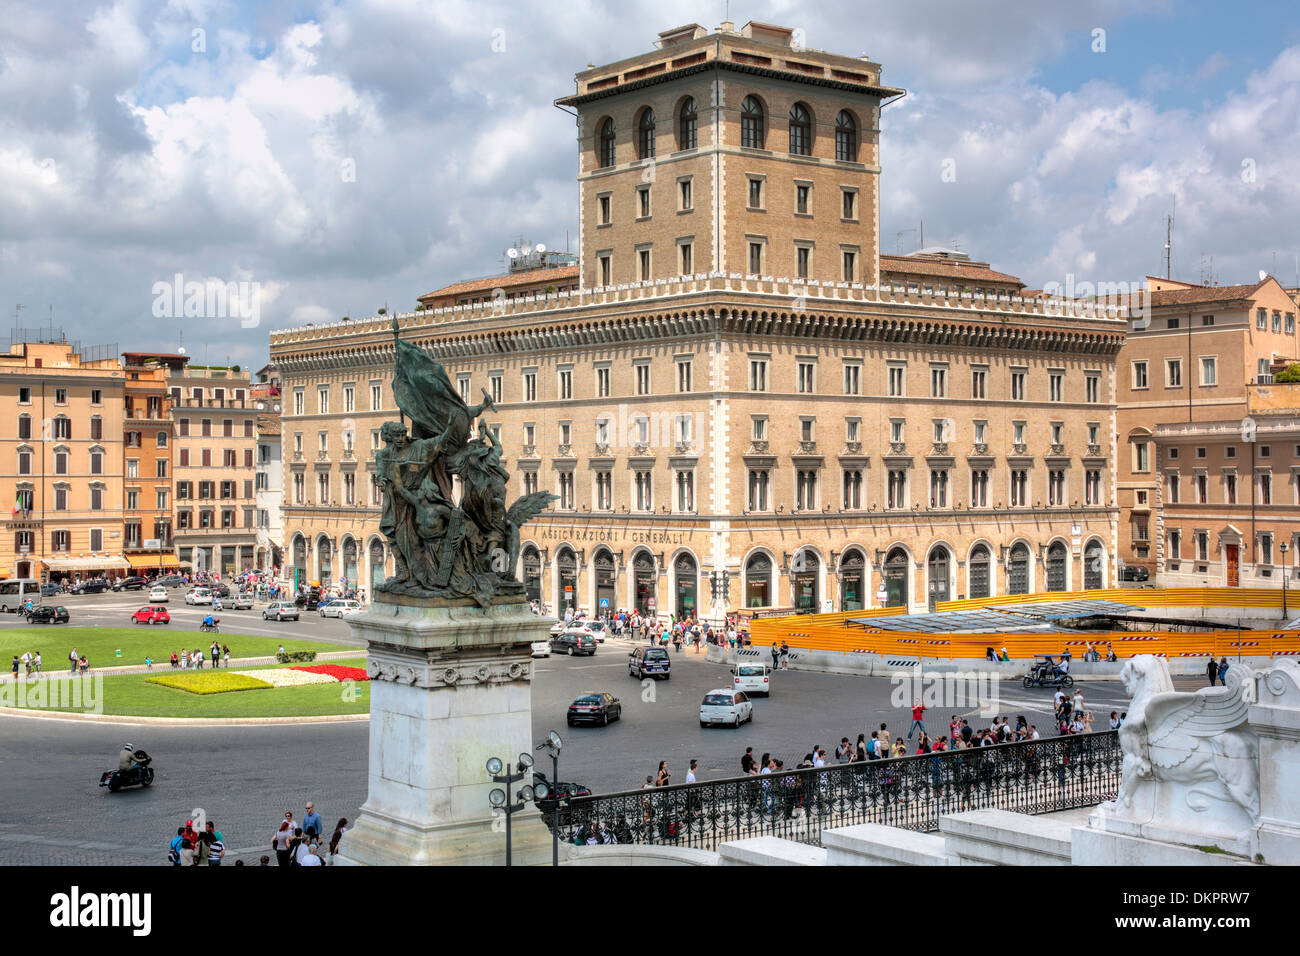 Generali High Resolution Stock Photography And Images Alamy